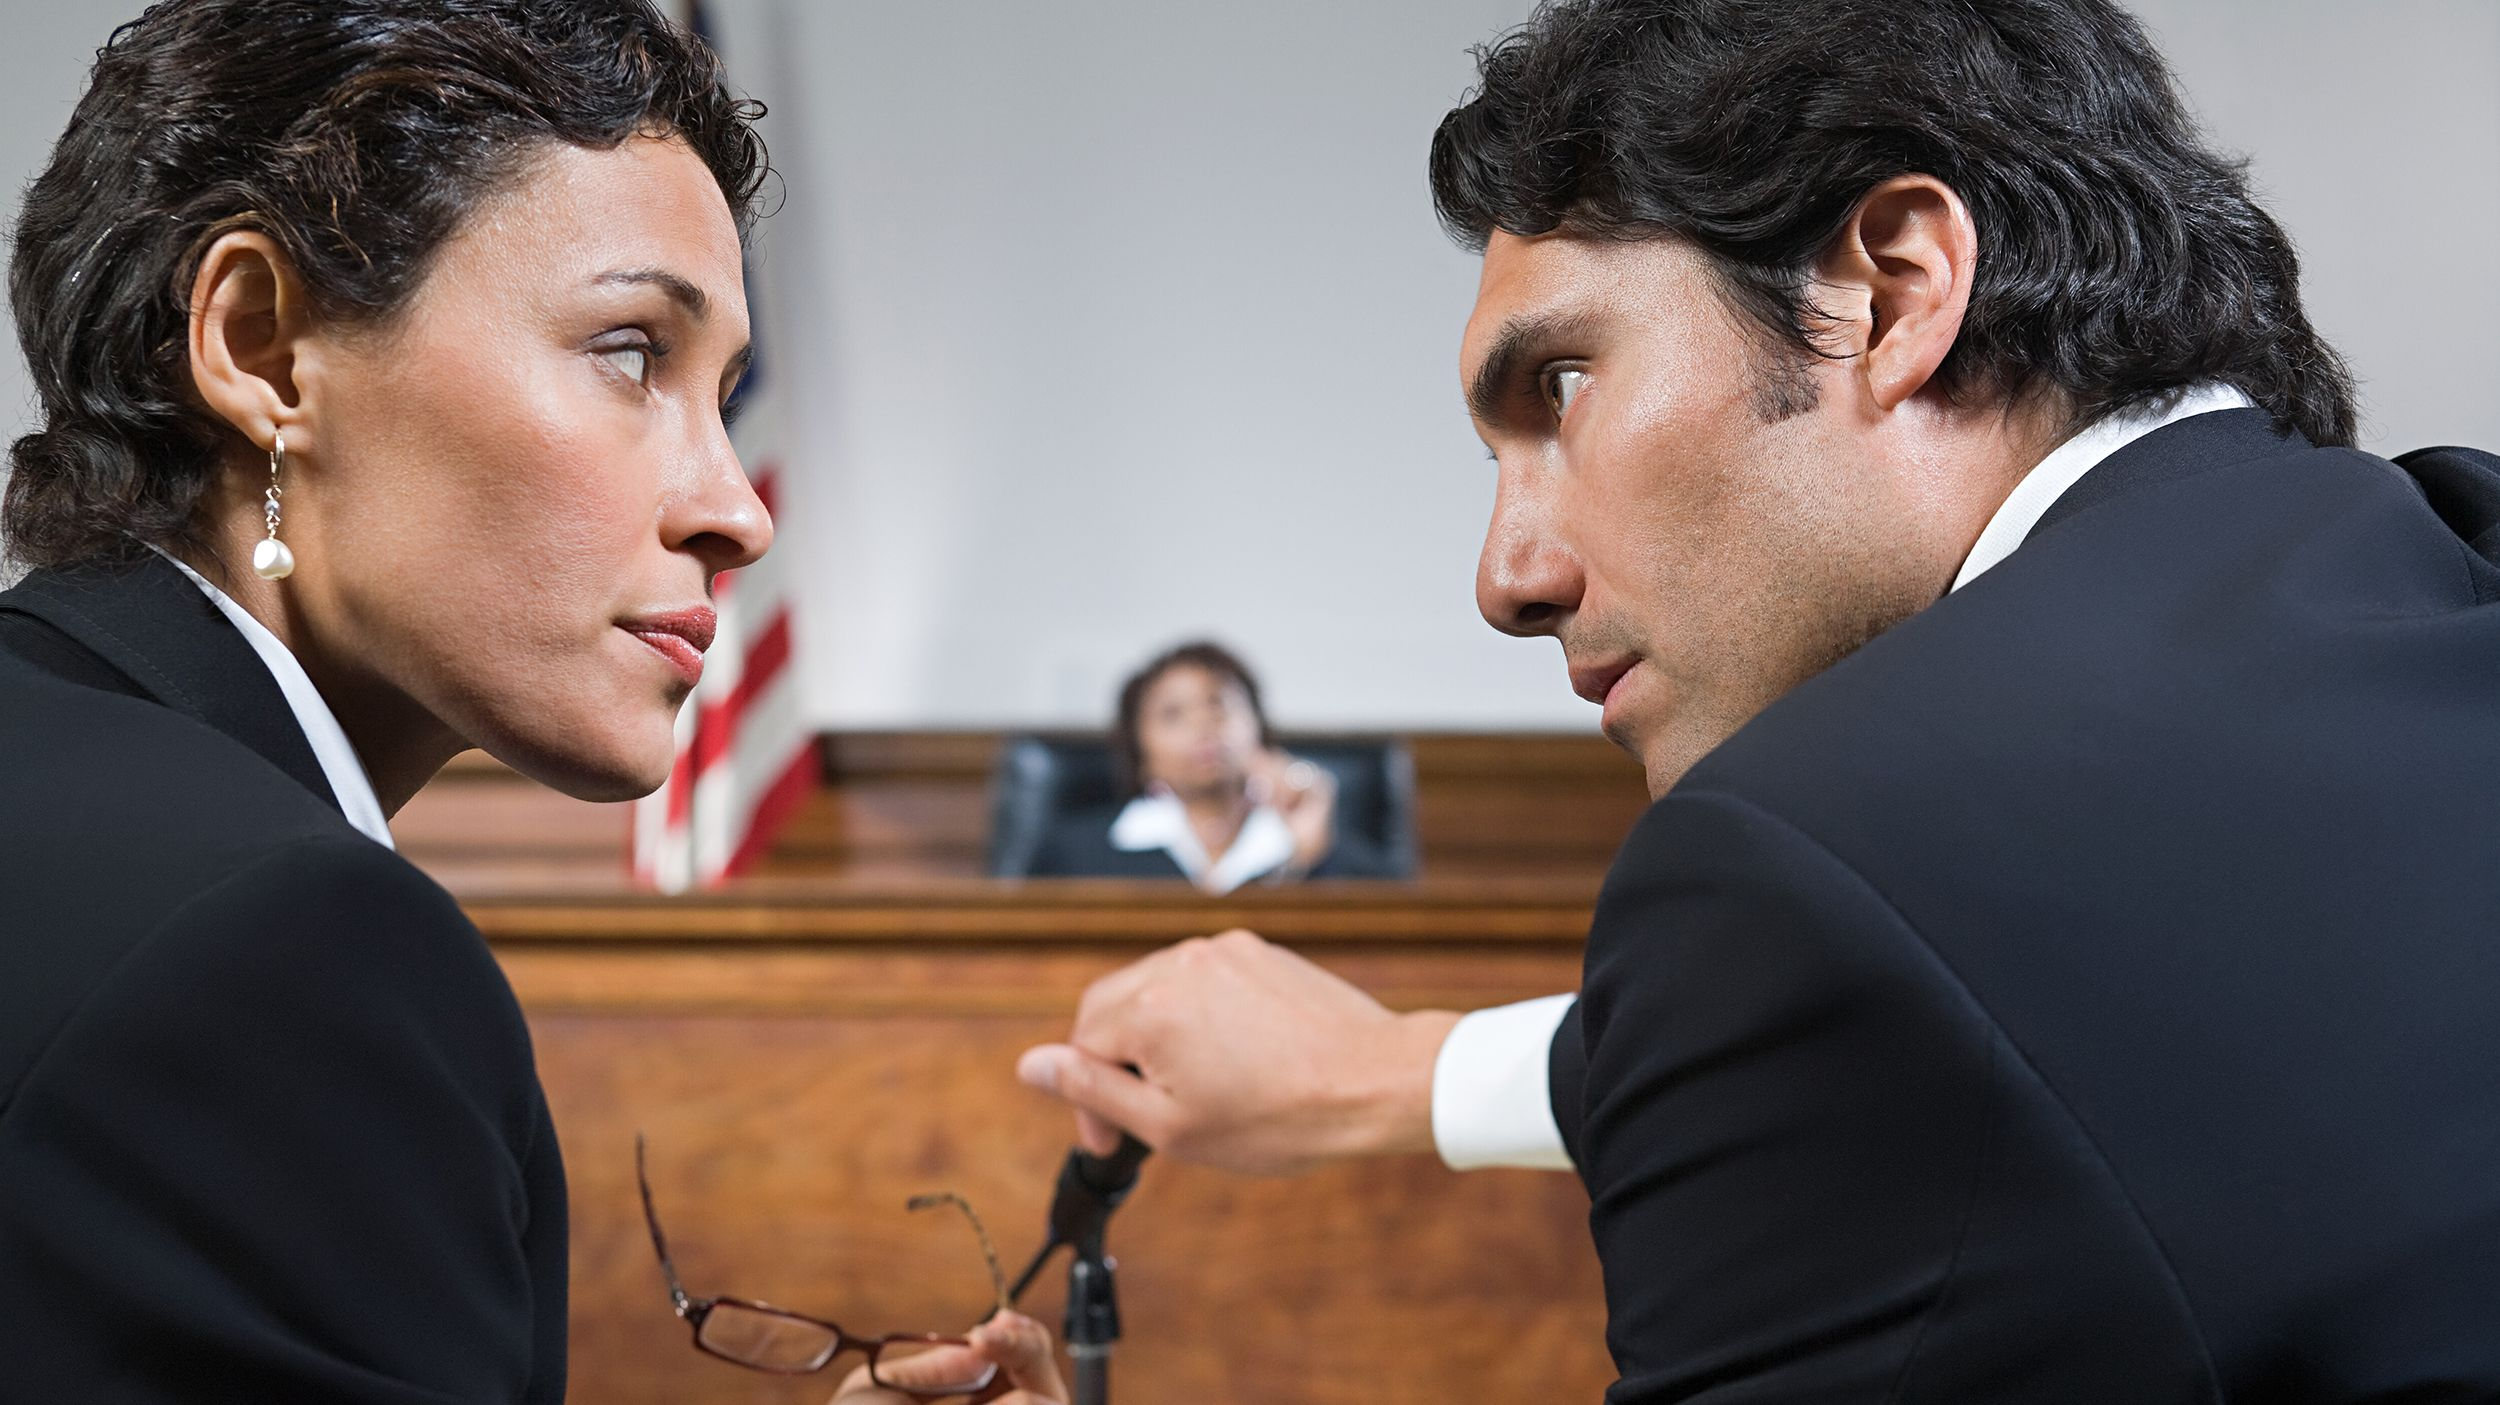 Top Attributes Of An Effective Defense Attorney